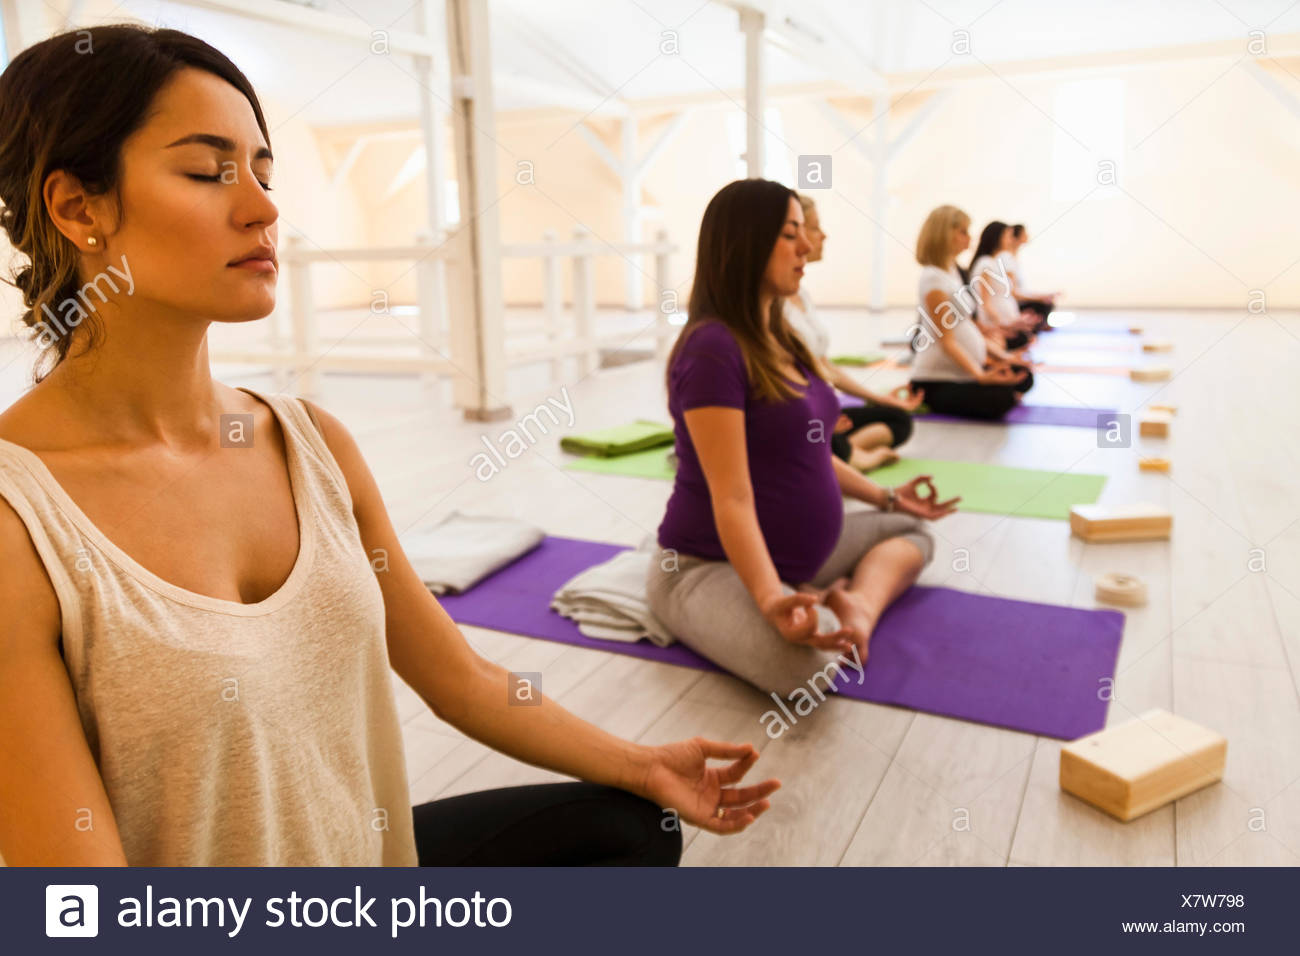 Prenatal Yoga Class Stock Photo 280223028